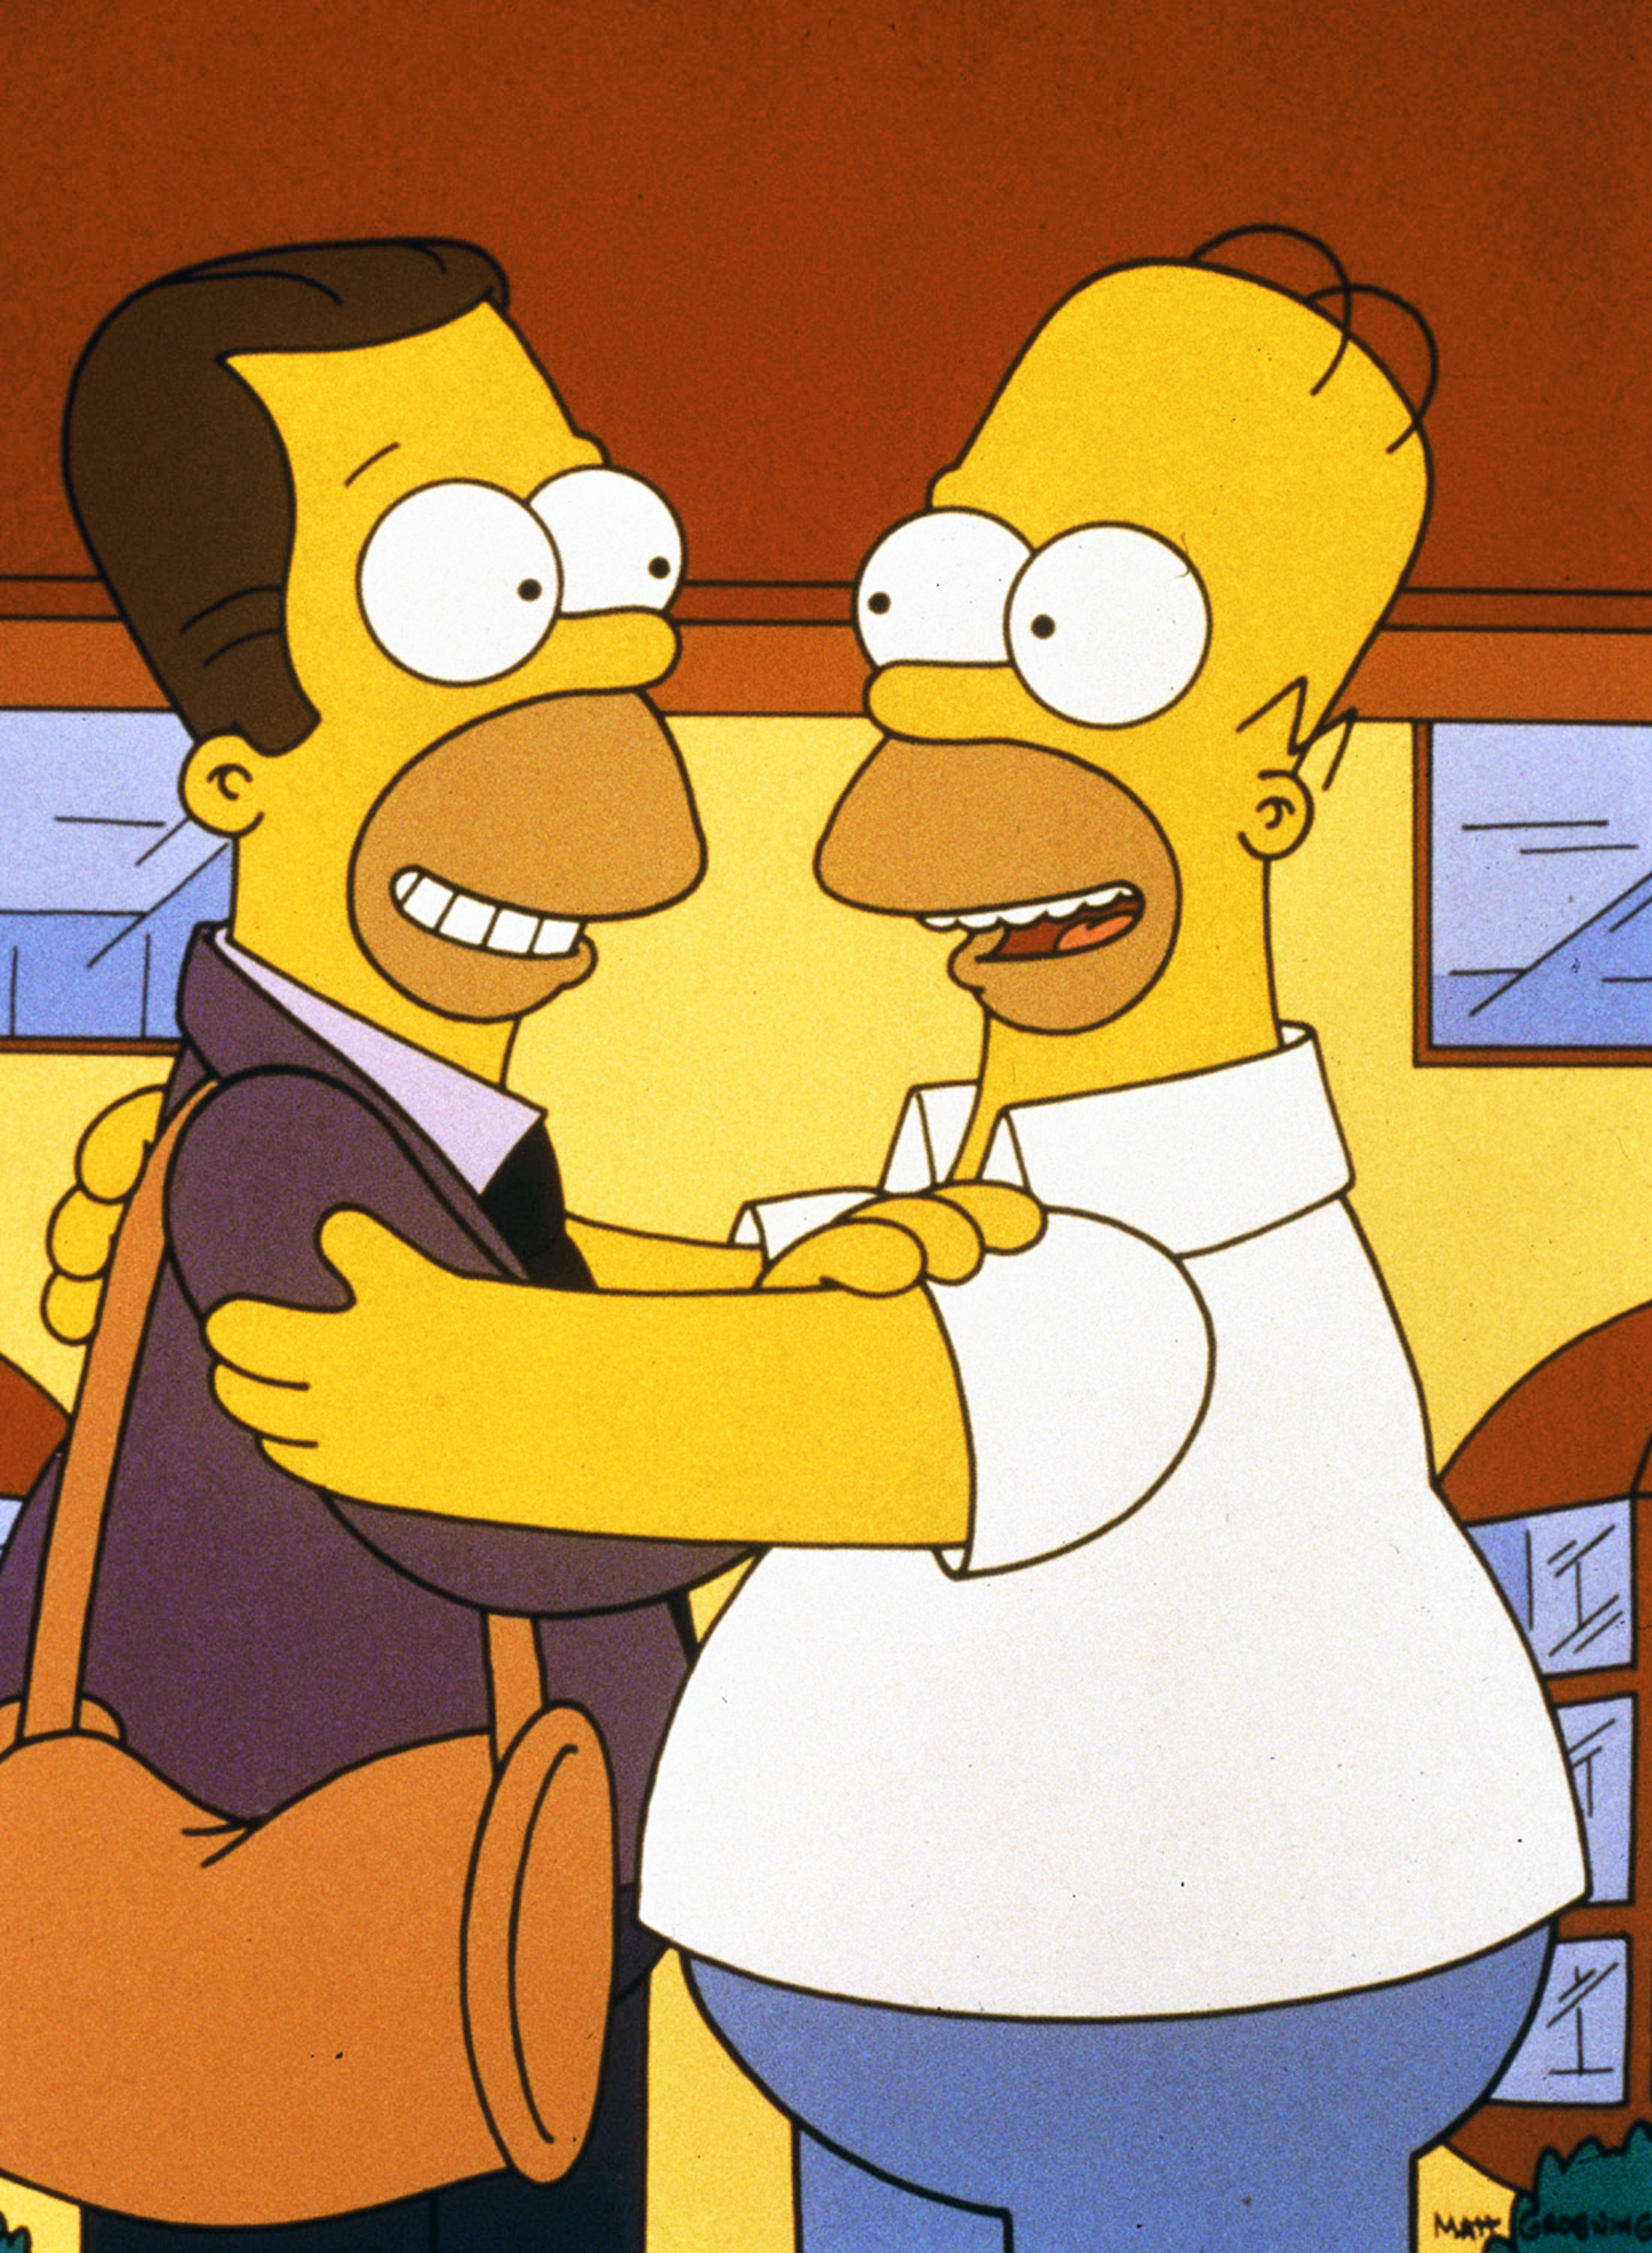 """<b>Danny DeVito:</b> DeVito appeared three times on <i>The Simpsons</i> as Homer's half-brother, Herb Powell, first in """"Oh Brother Where Art Thou?"""" in 1991 and then in 1992's """"Brother, Can you Spare Two Dimes?"""" more than 20 years later, in 2013, in """"The Changing of the Guardian."""""""